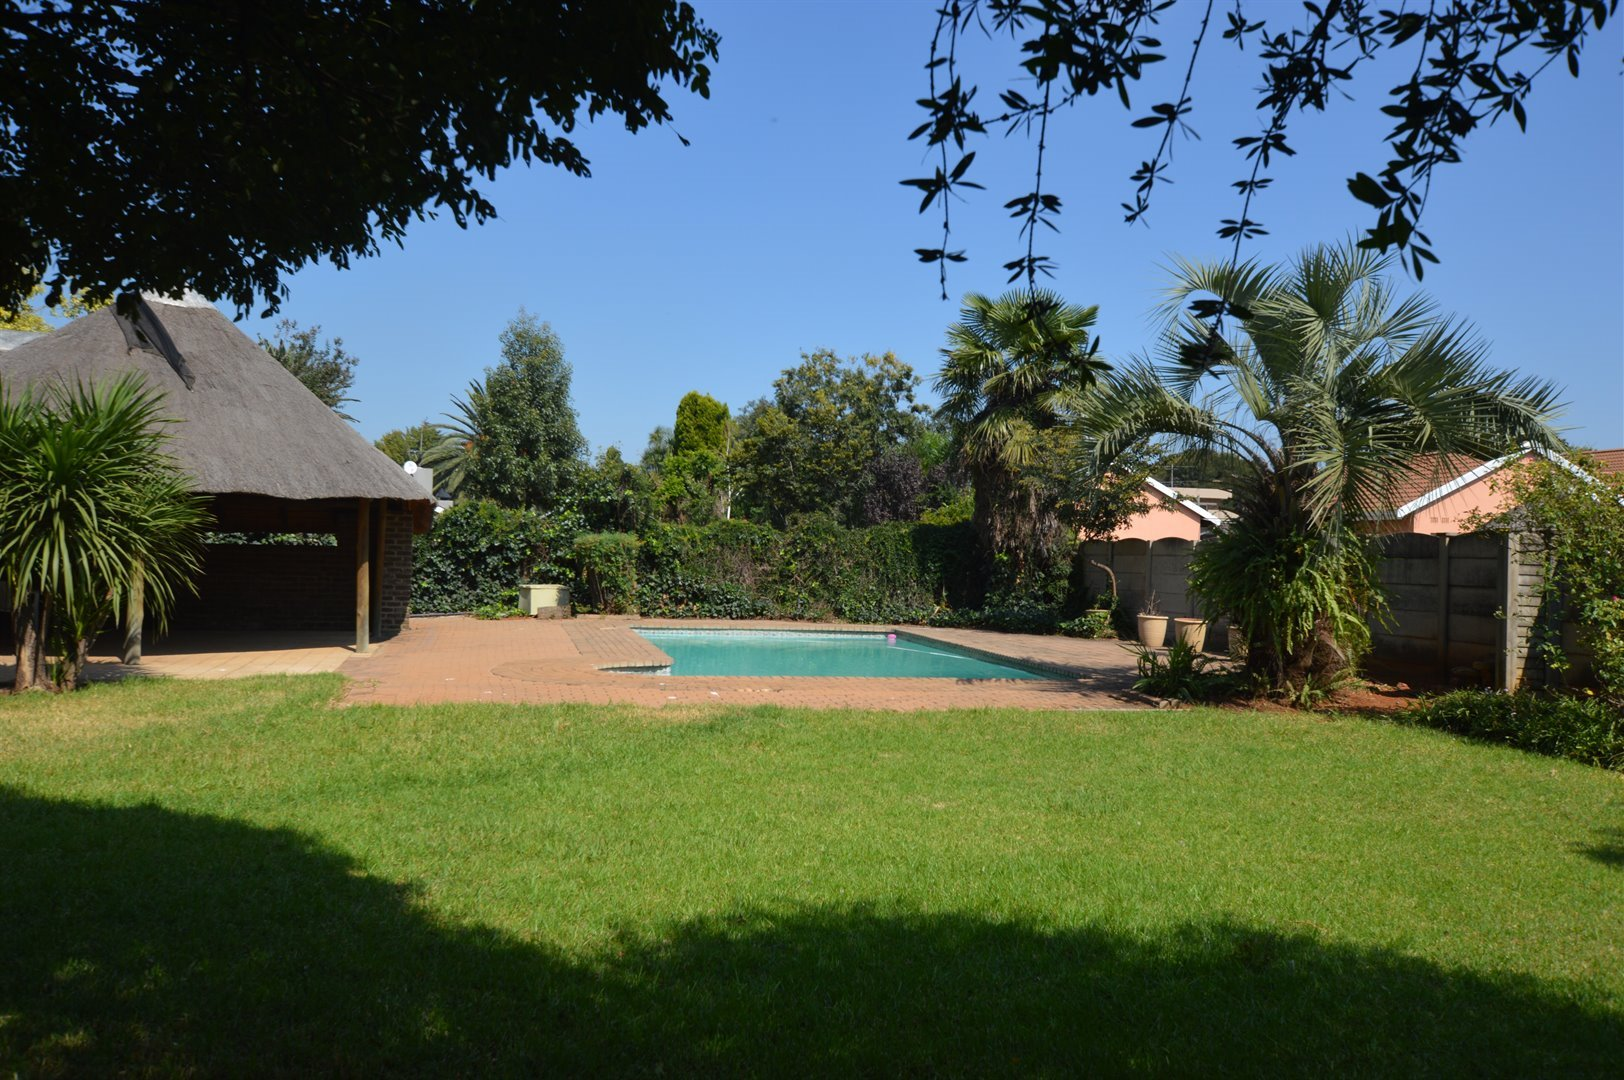 Vanderbijlpark Se 2 property for sale. Ref No: 13623209. Picture no 2